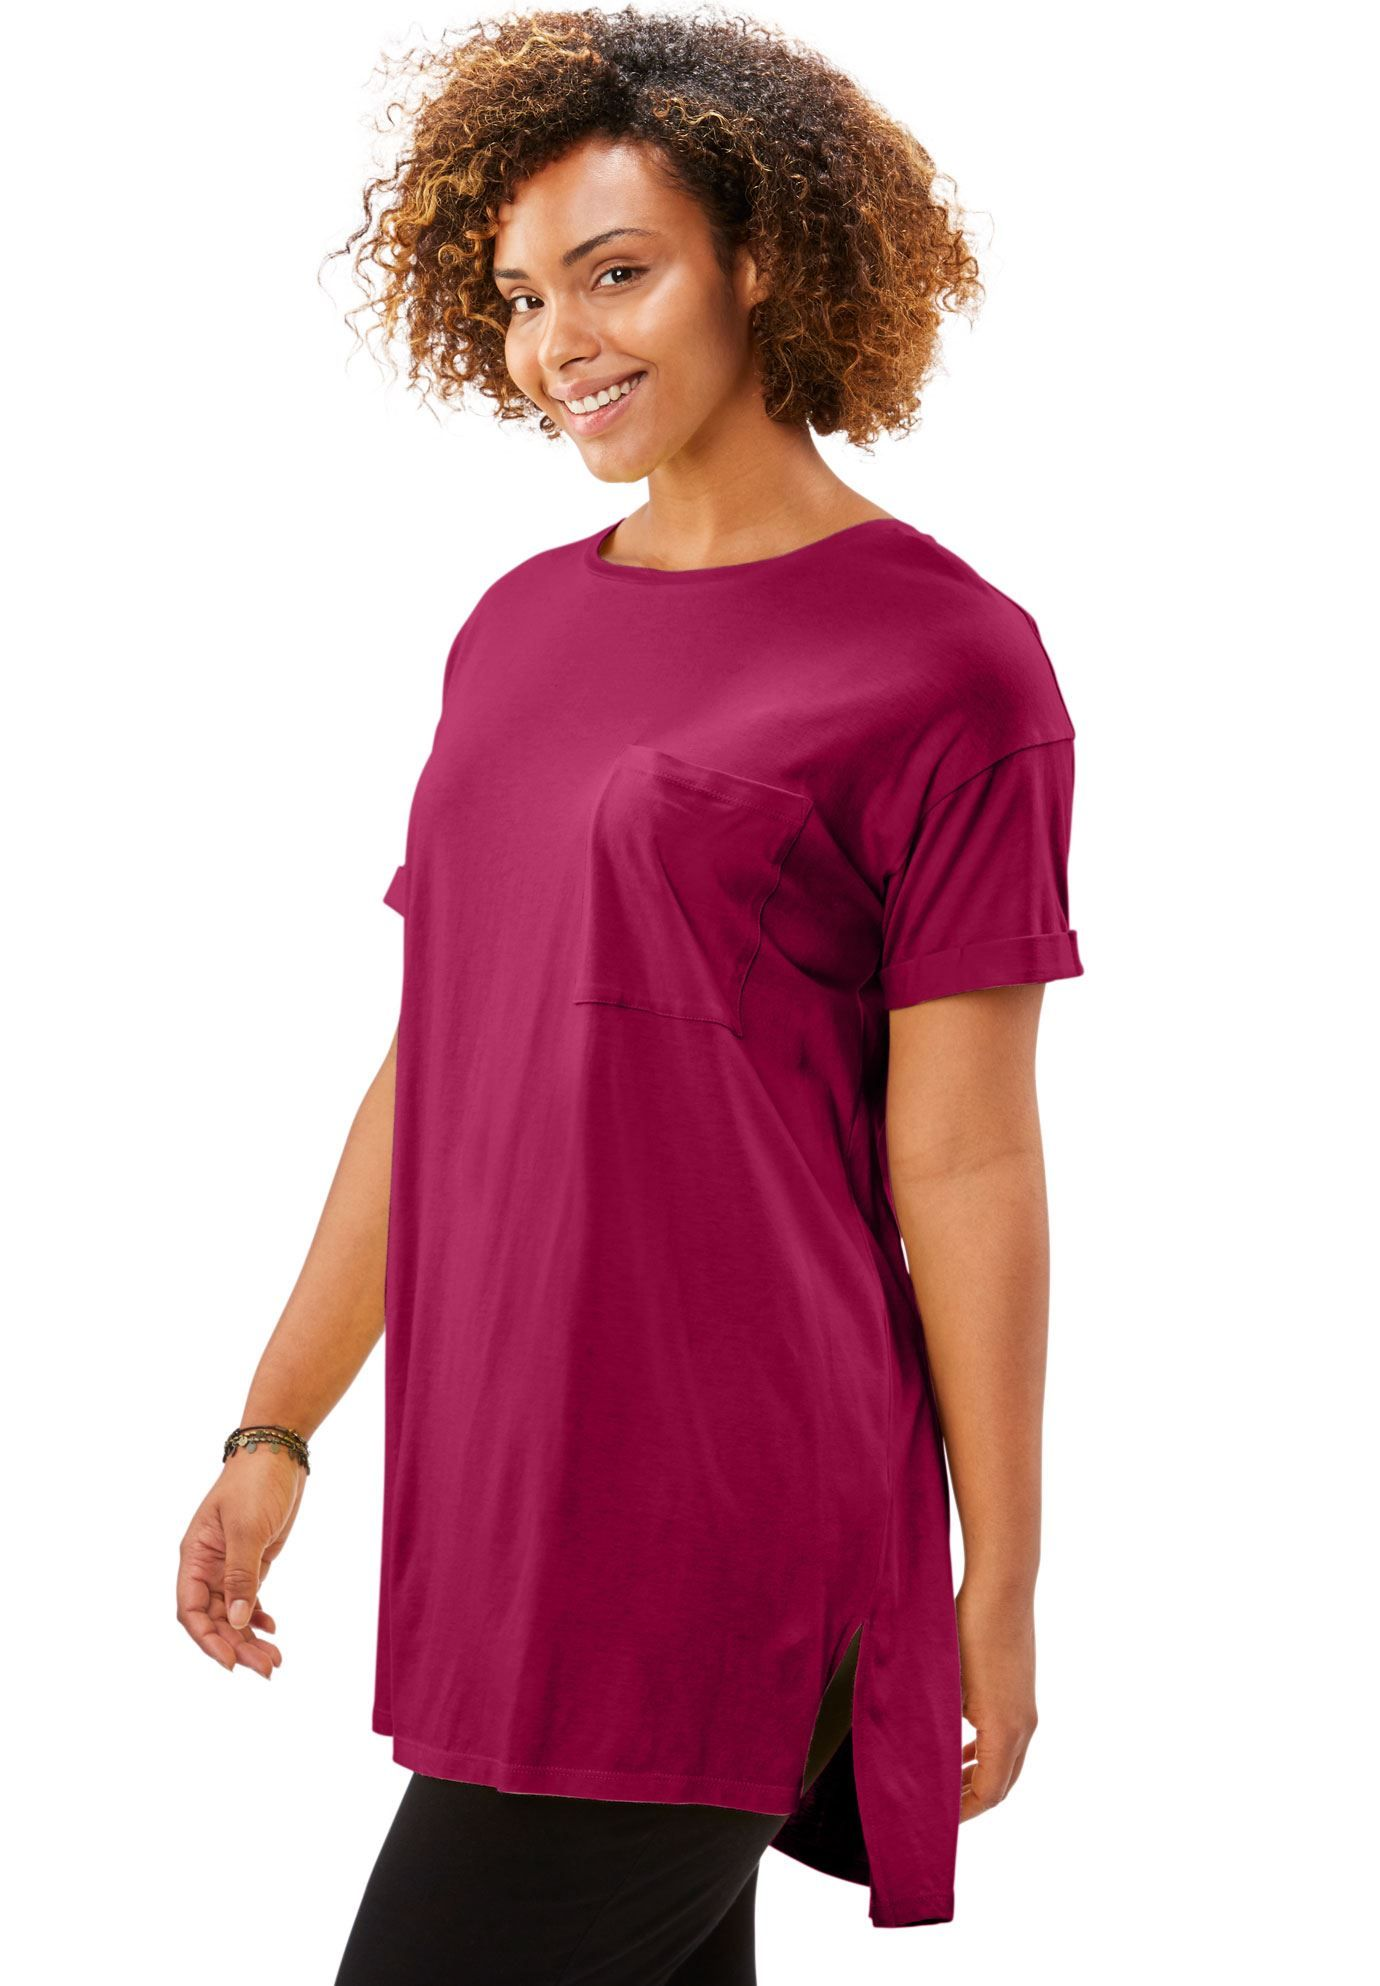 b2a096434 Longer Length Crewneck Tee - Women's Plus Size Clothing | Products ...